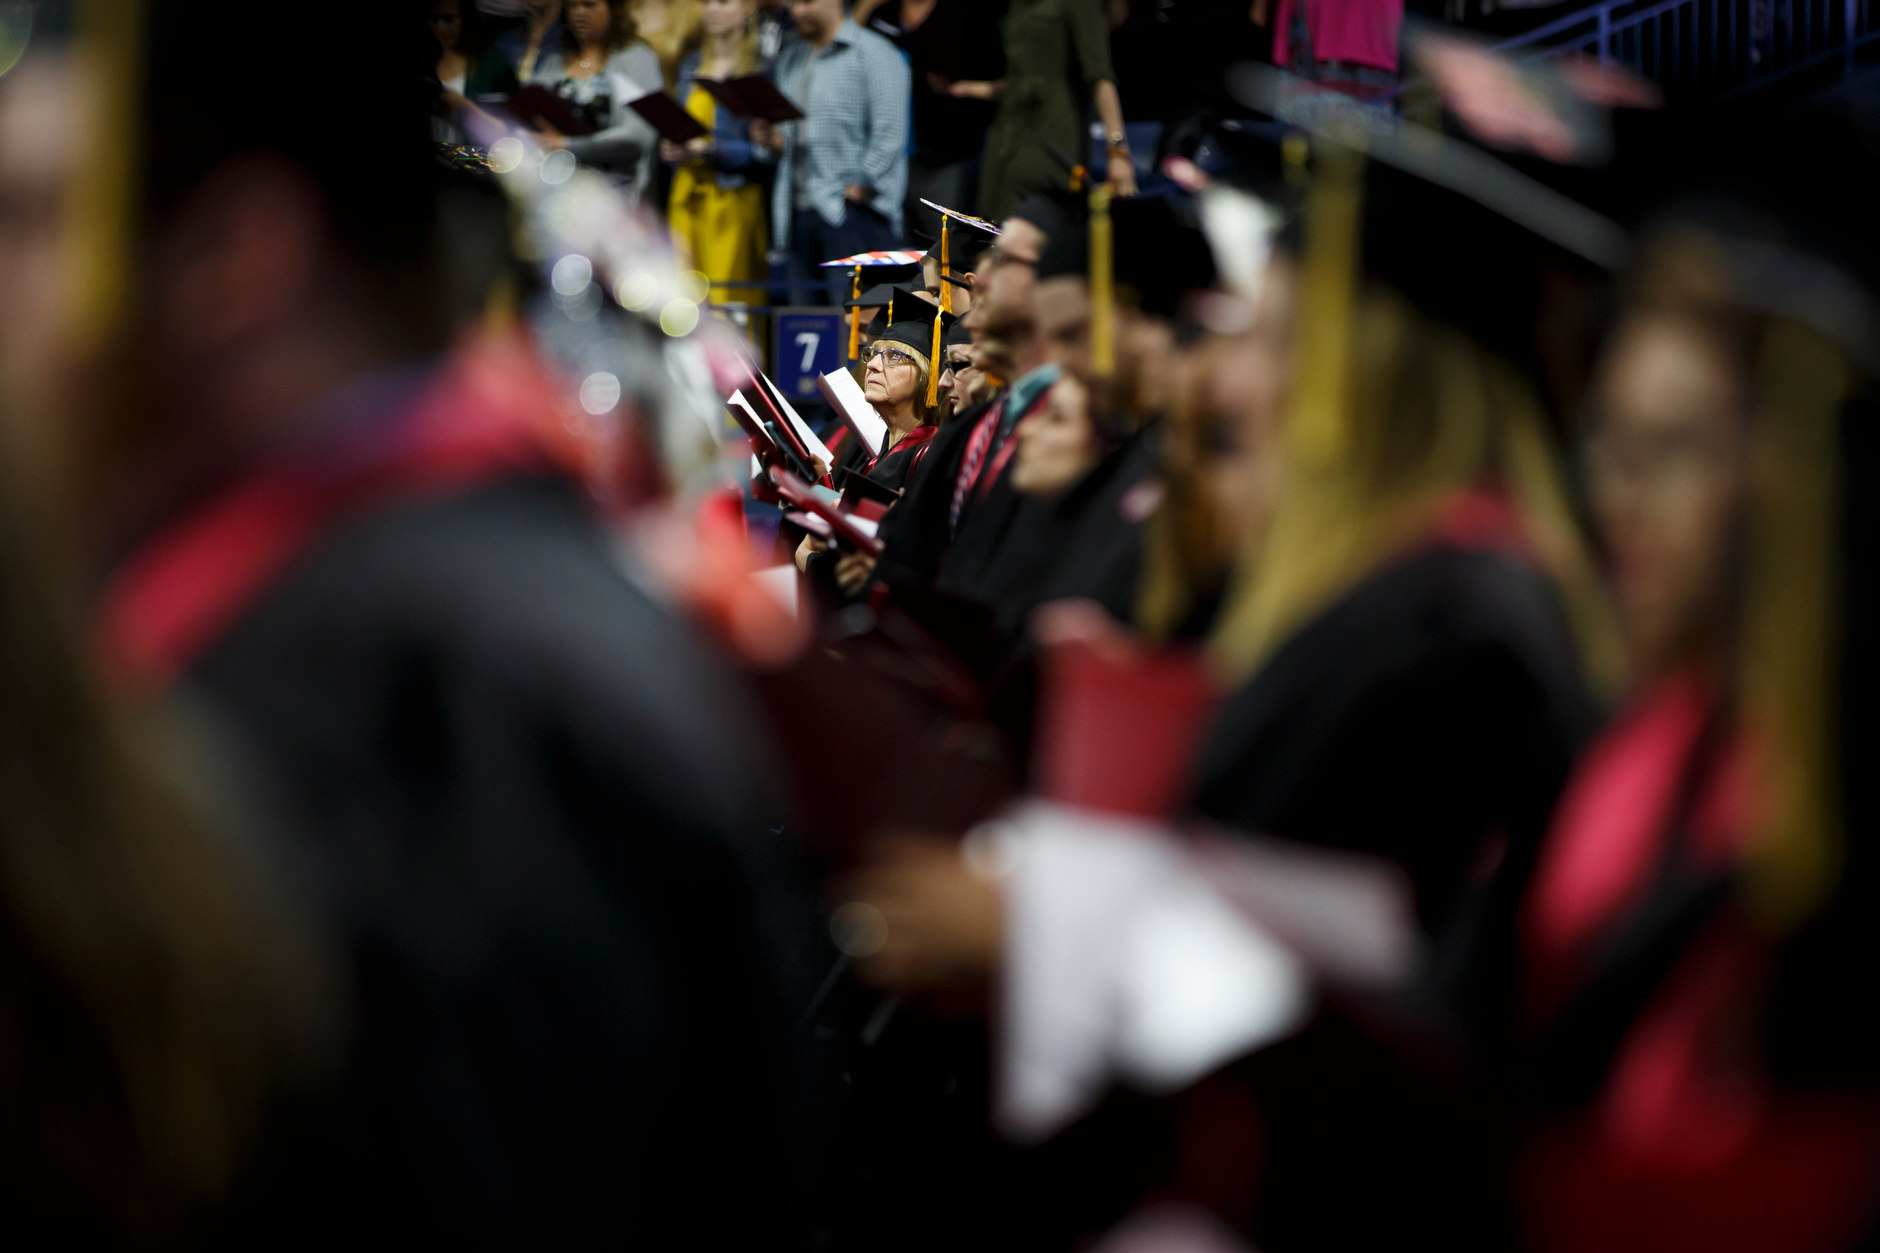 Graduates stand for the singing of the alma mater during the Indiana University South Bend Commencement at the University of Notre Dame on Tuesday, May 7, 2019. (James Brosher/Indiana University)